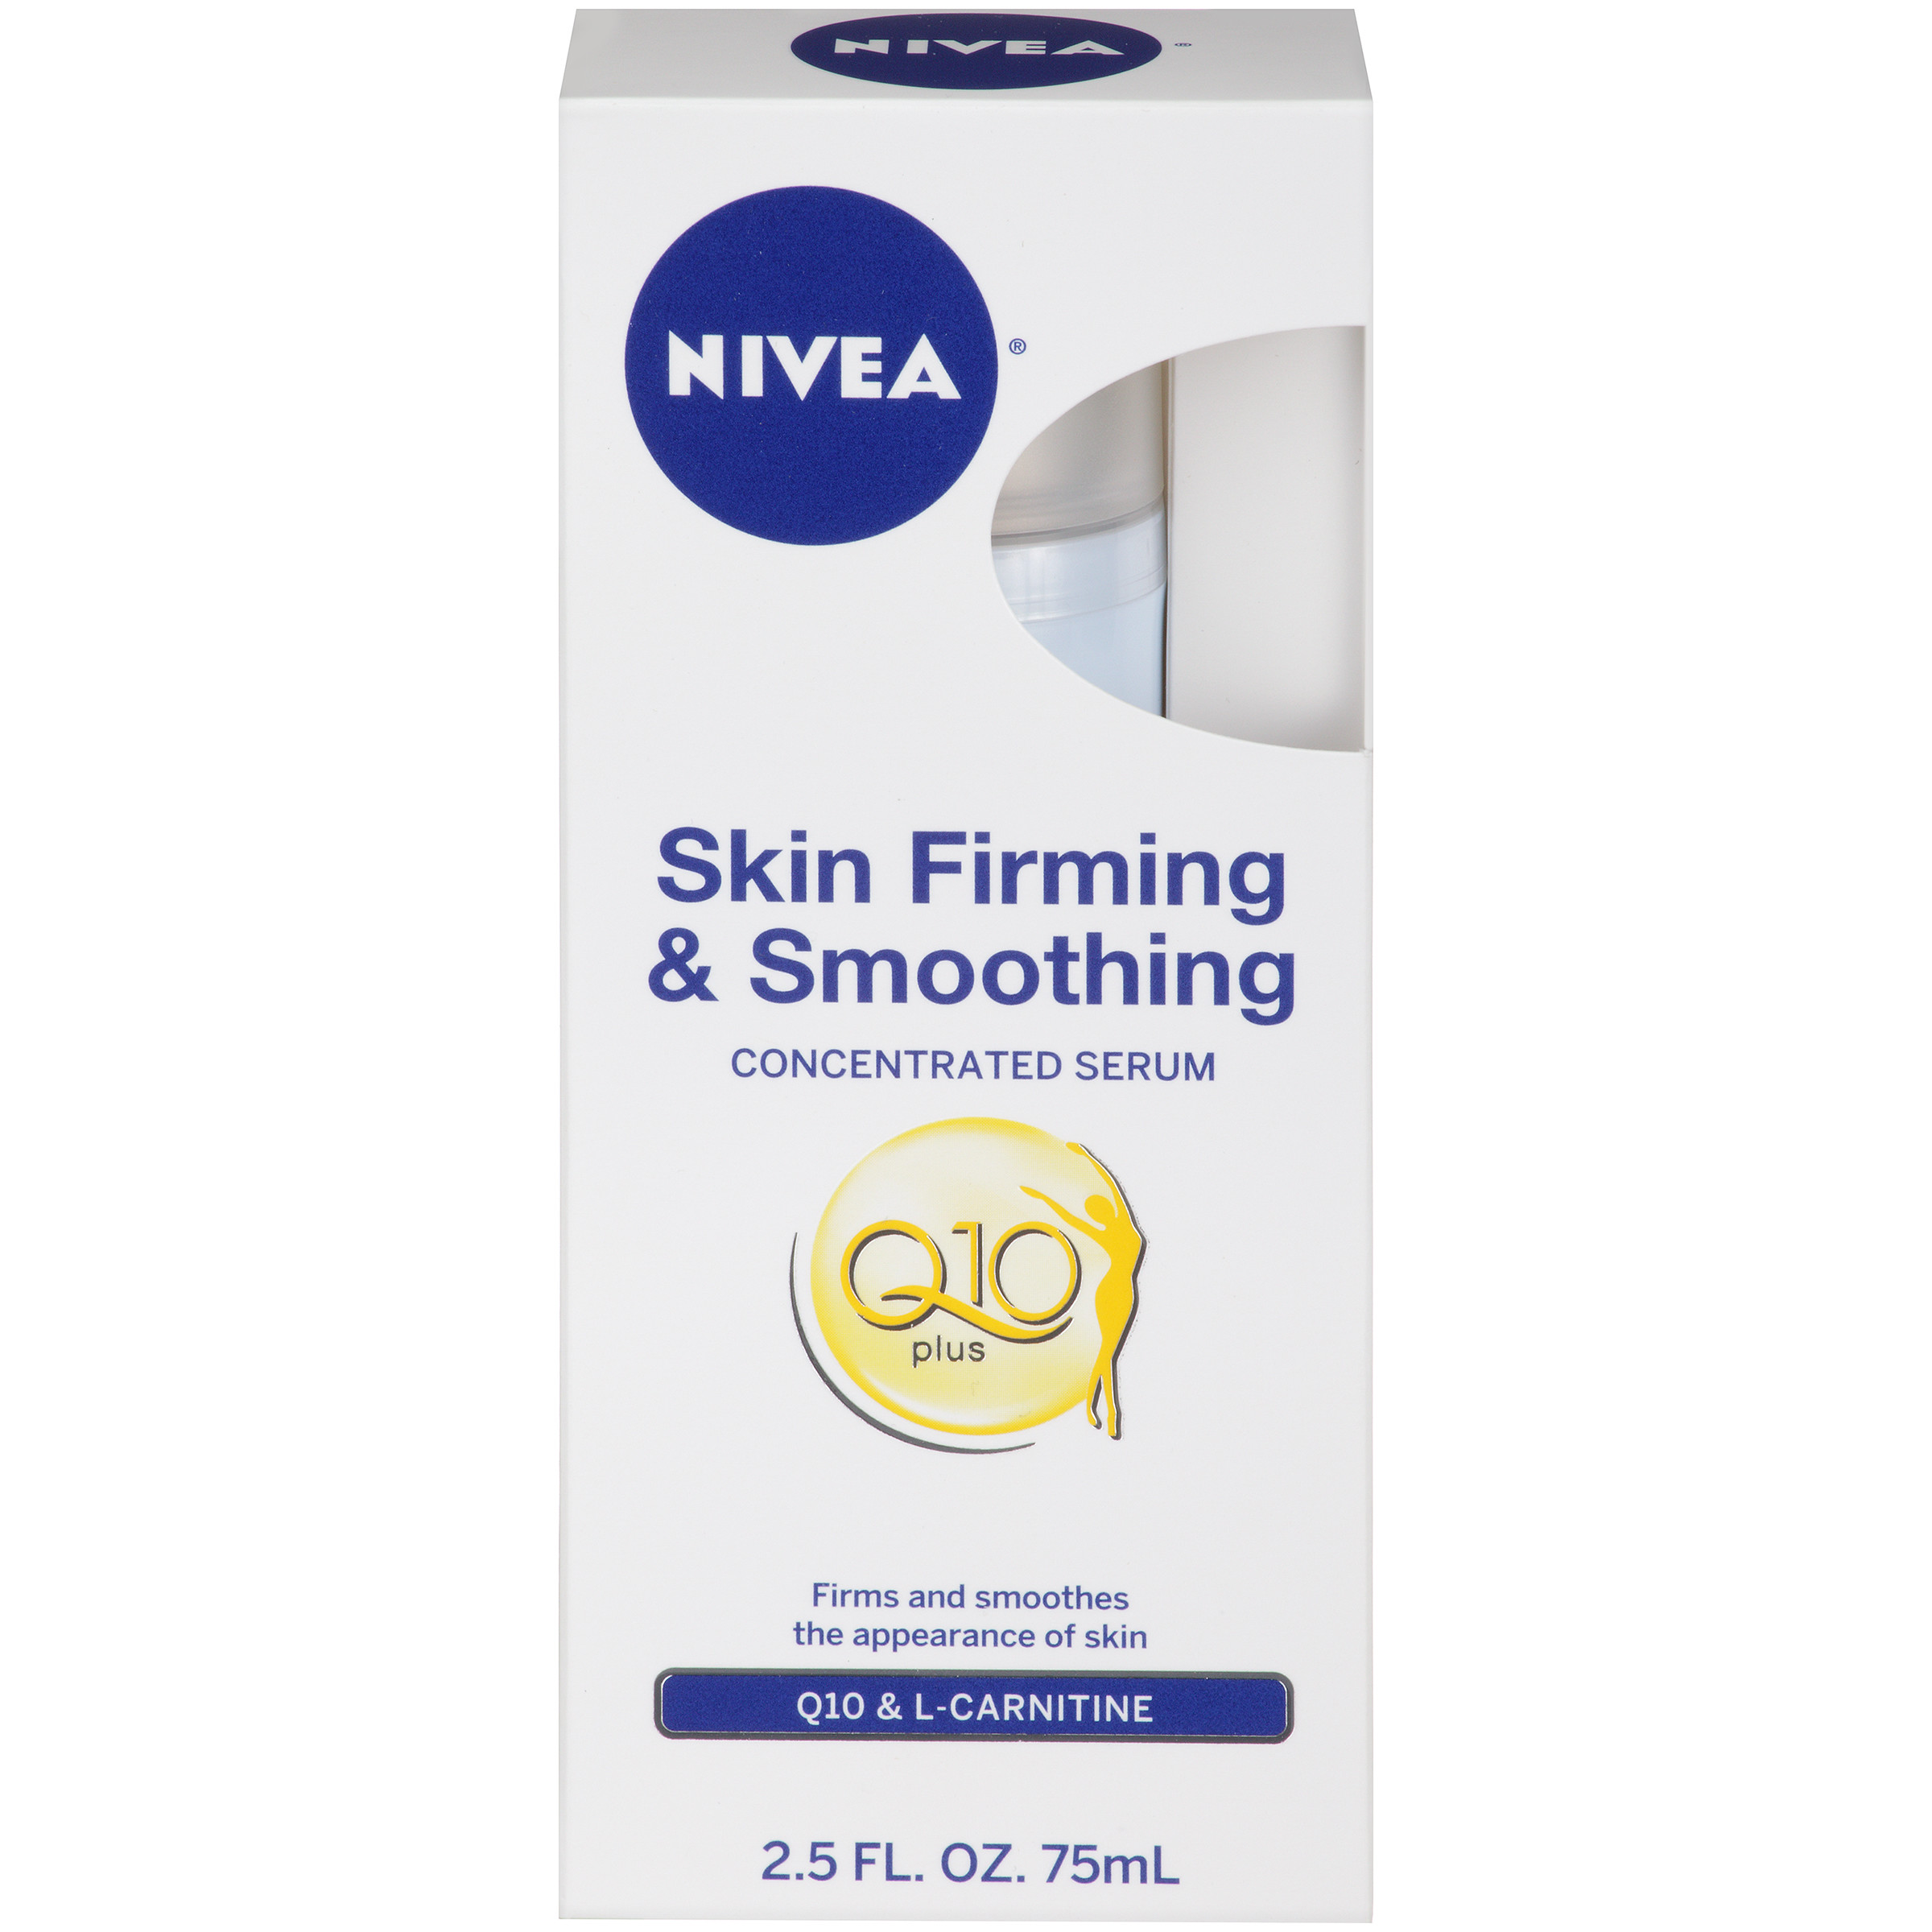 NIVEA® Q10 Plus Skin Firming & Smoothing Concentrated Serum 2.5 fl. oz.